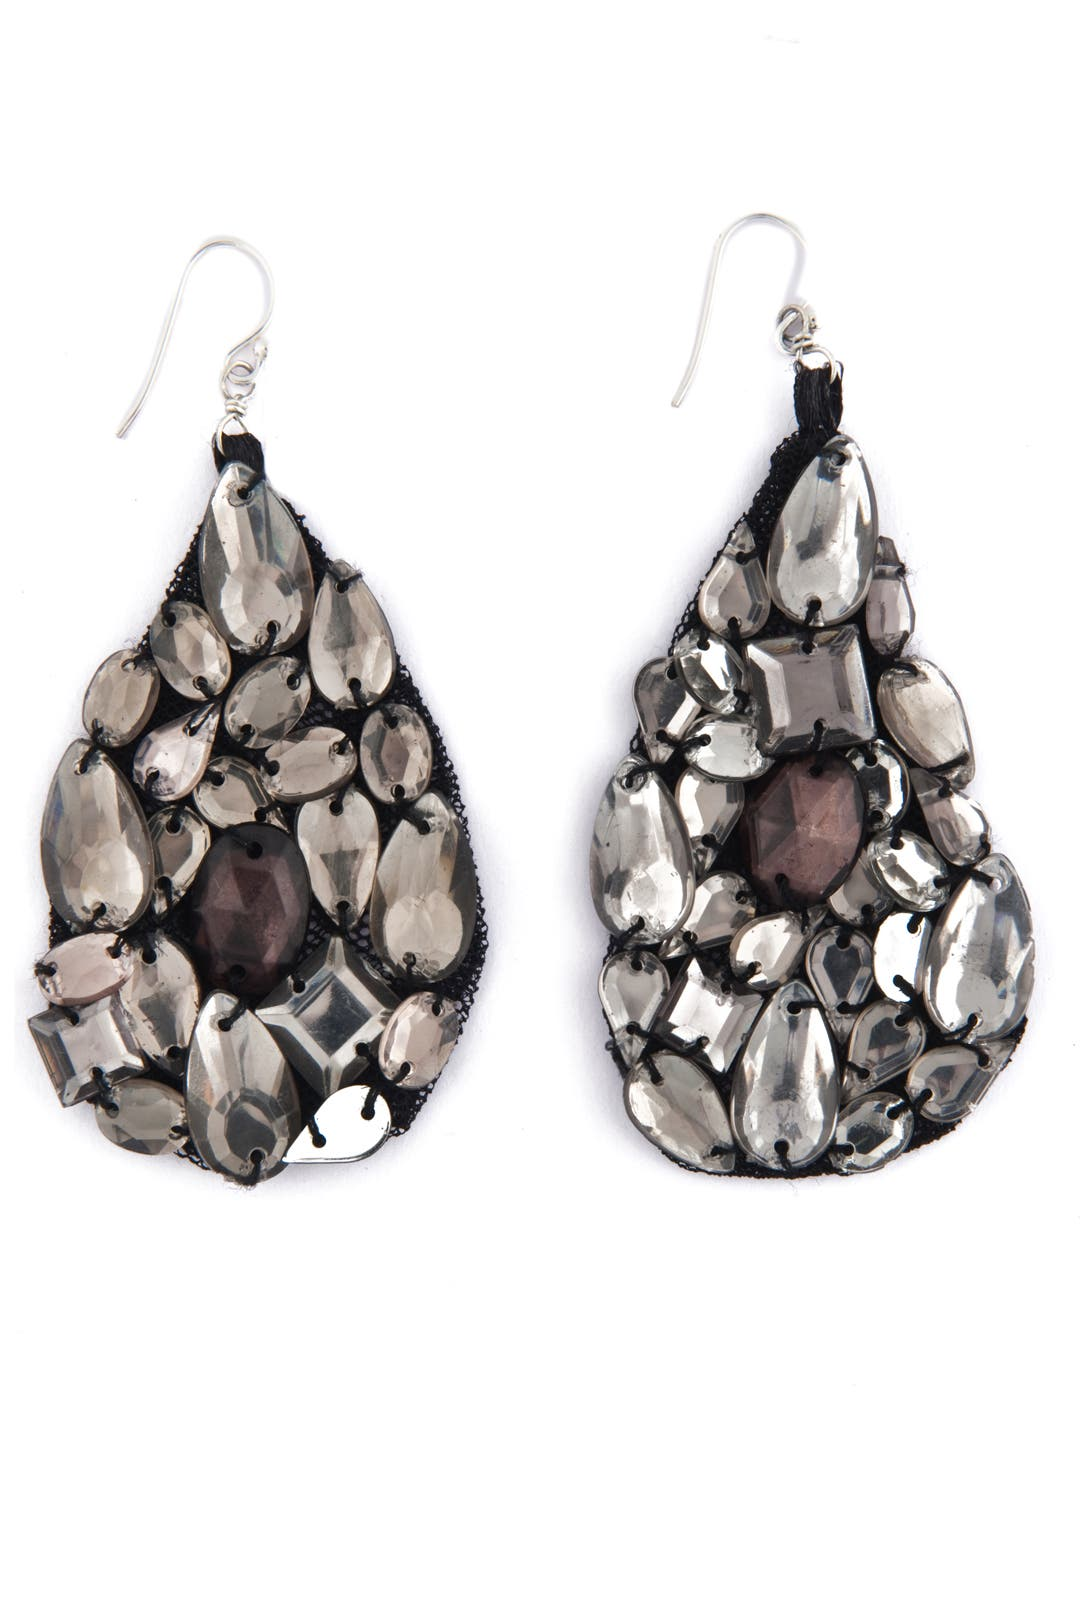 Hematite Glitzy Glam Earrings by AV Max